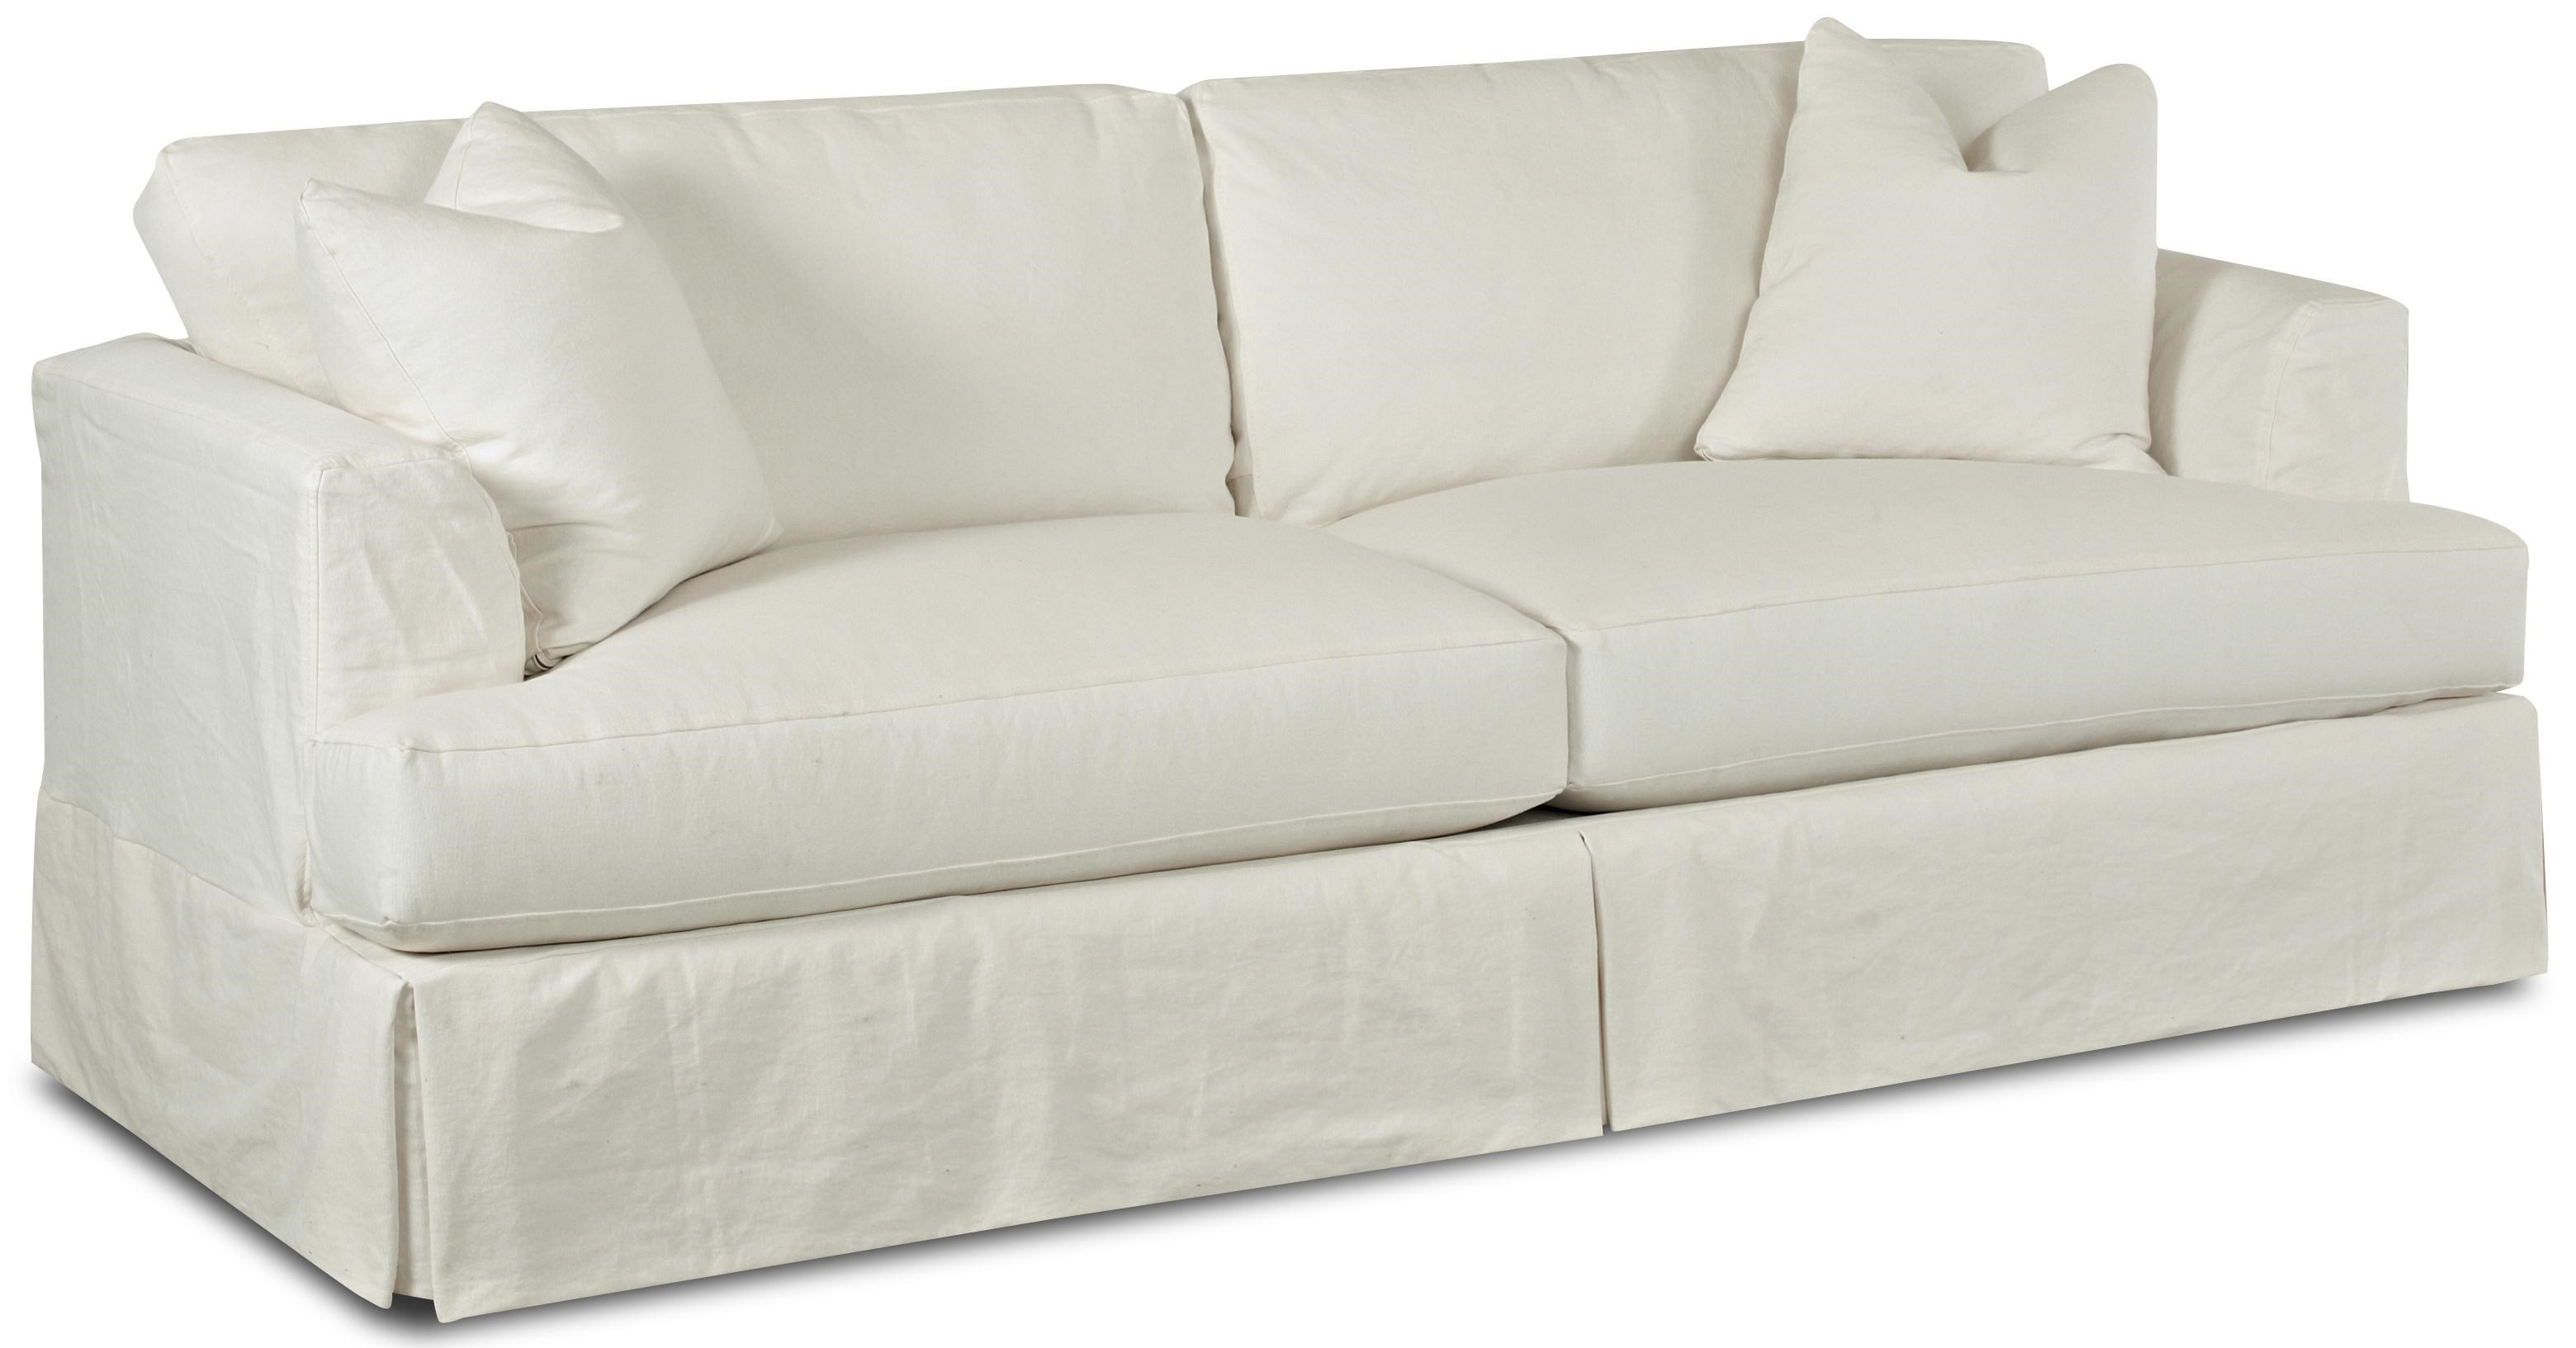 threshold sofa cover ikea with chaise longue bentley klaussner 92100 by hudson s